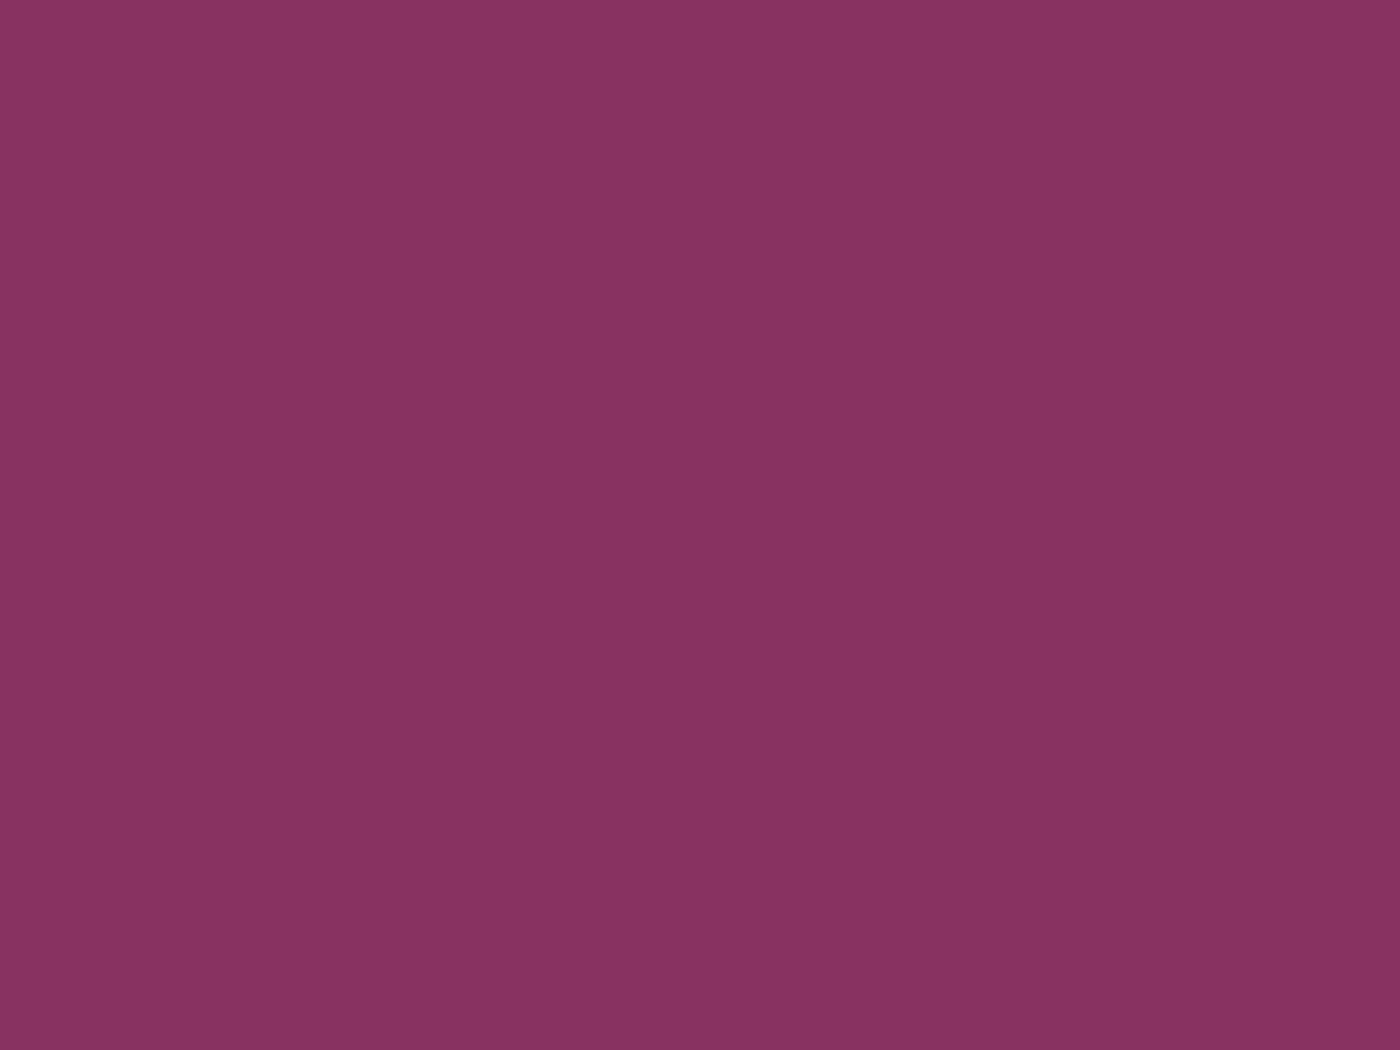 1400x1050 Boysenberry Solid Color Background